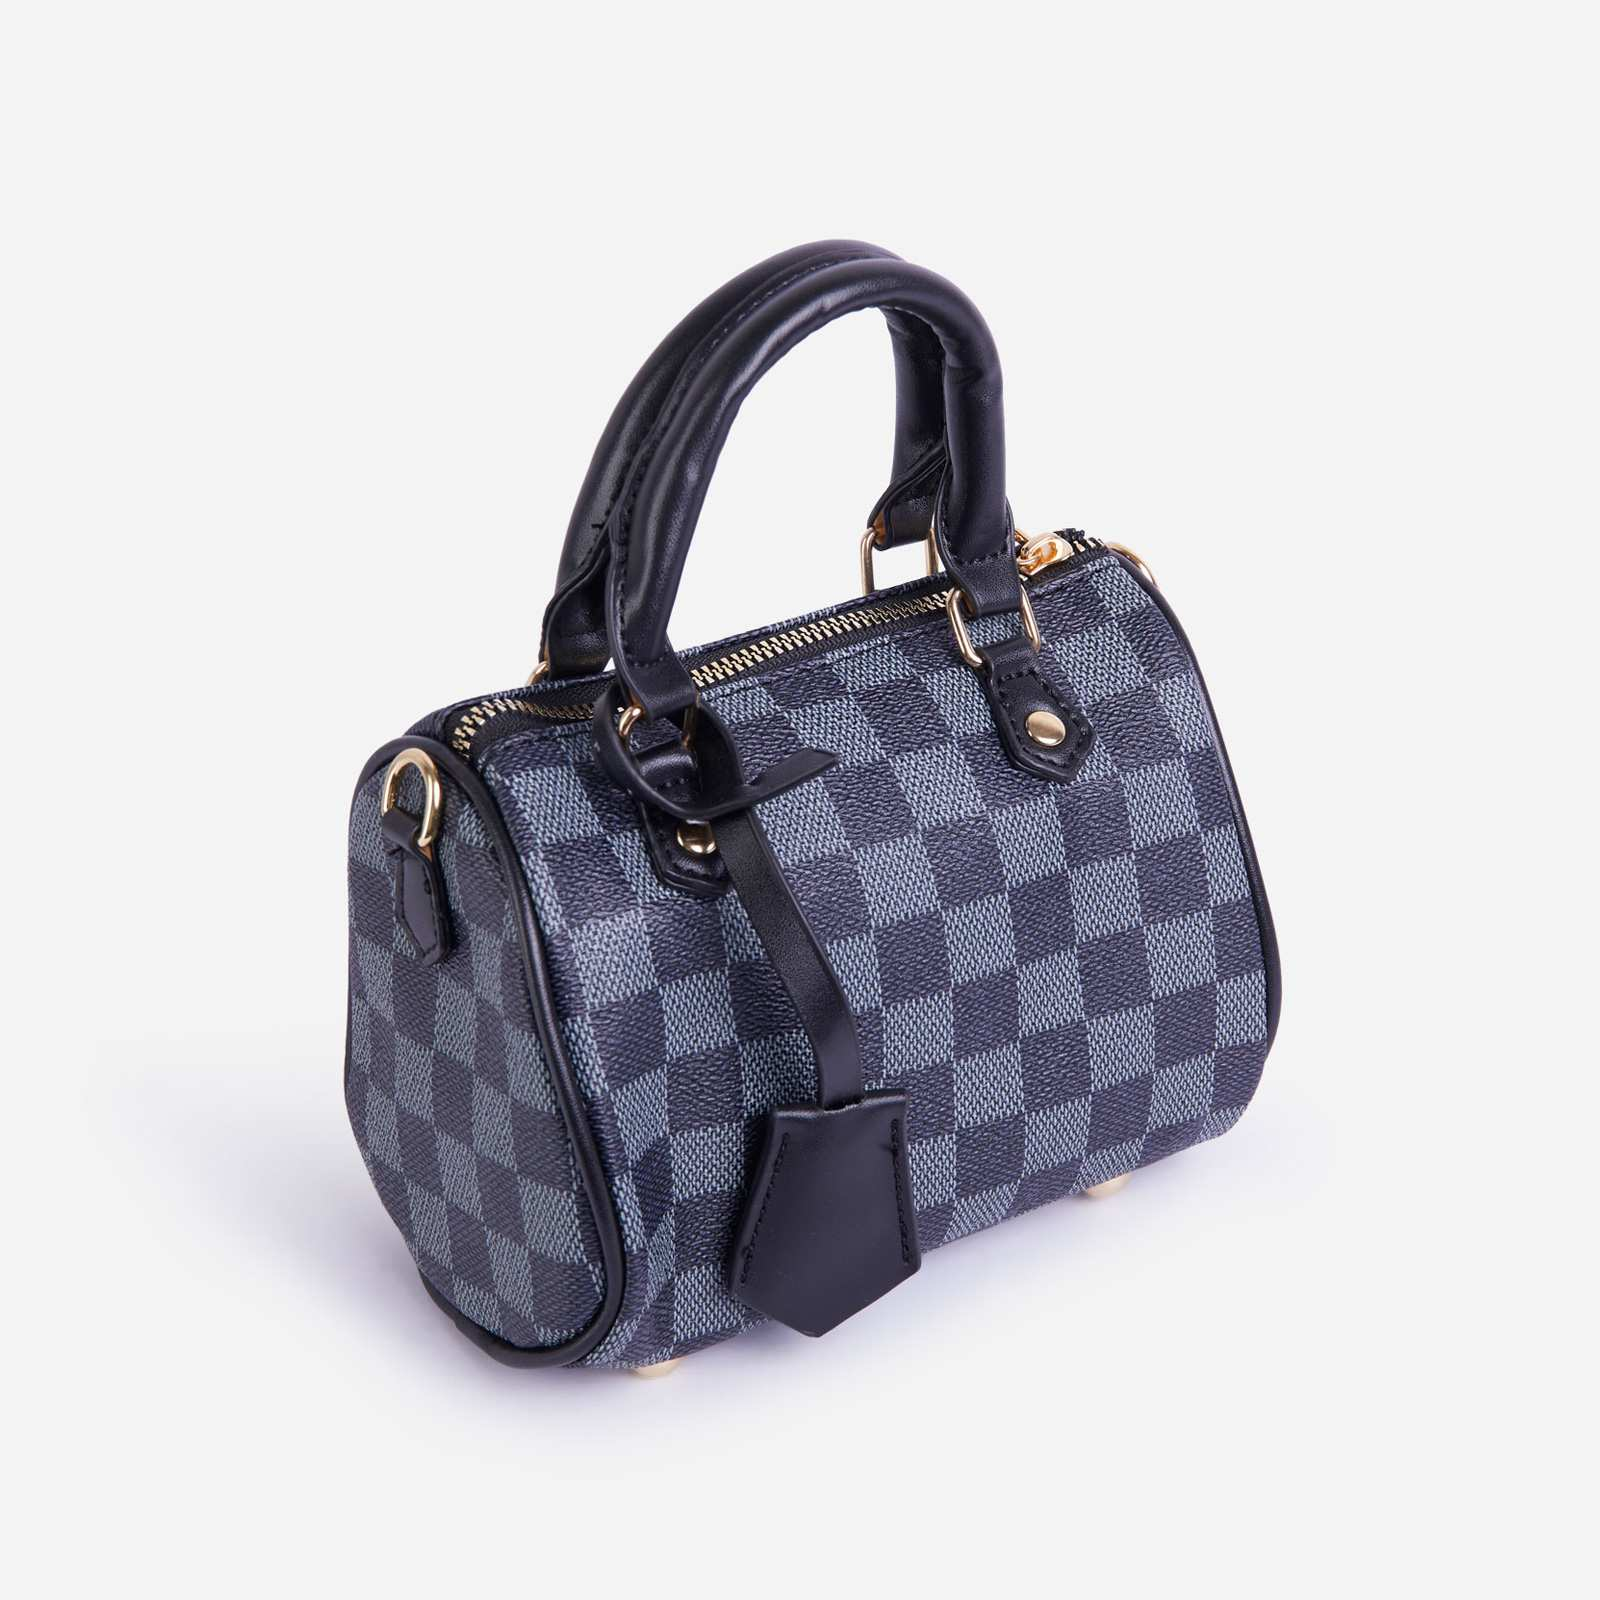 Lana Mini Bowling Bag In Black Check Print Faux Leather